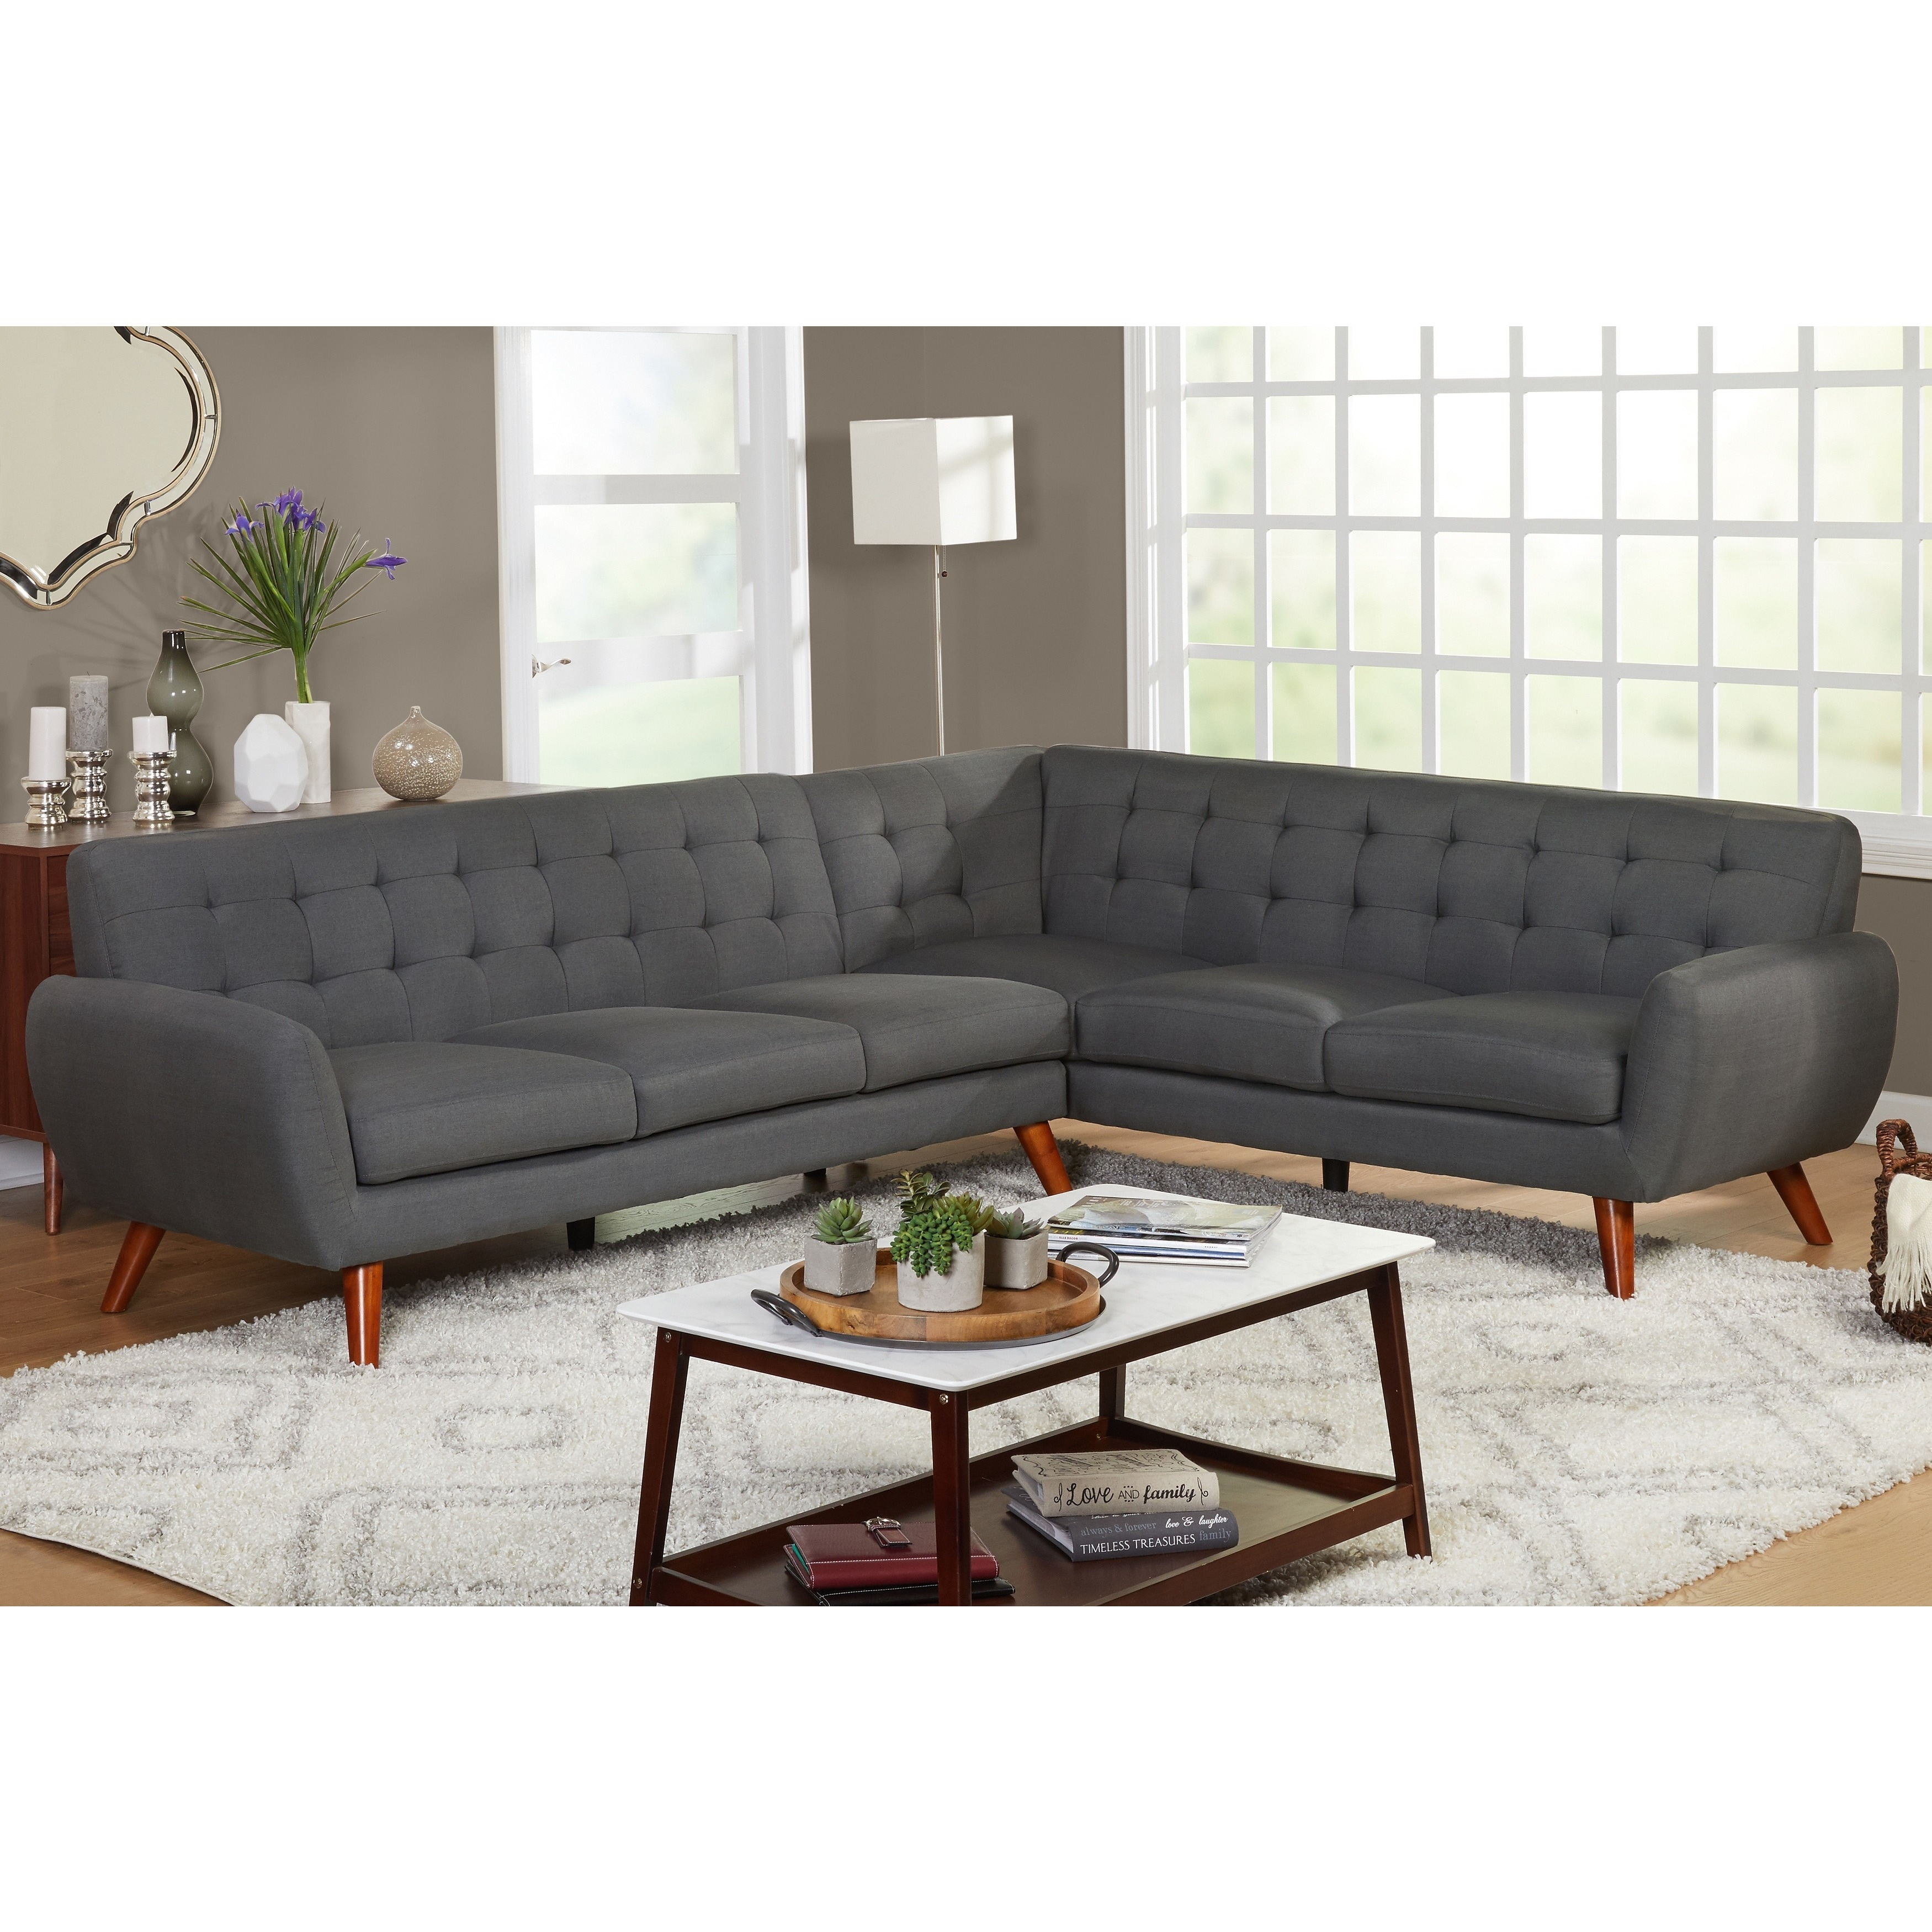 Shop Simple Living Livingston Mid Century Tufted L Shaped Sectional Sofa    On Sale   Free Shipping Today   Overstock.com   14357189